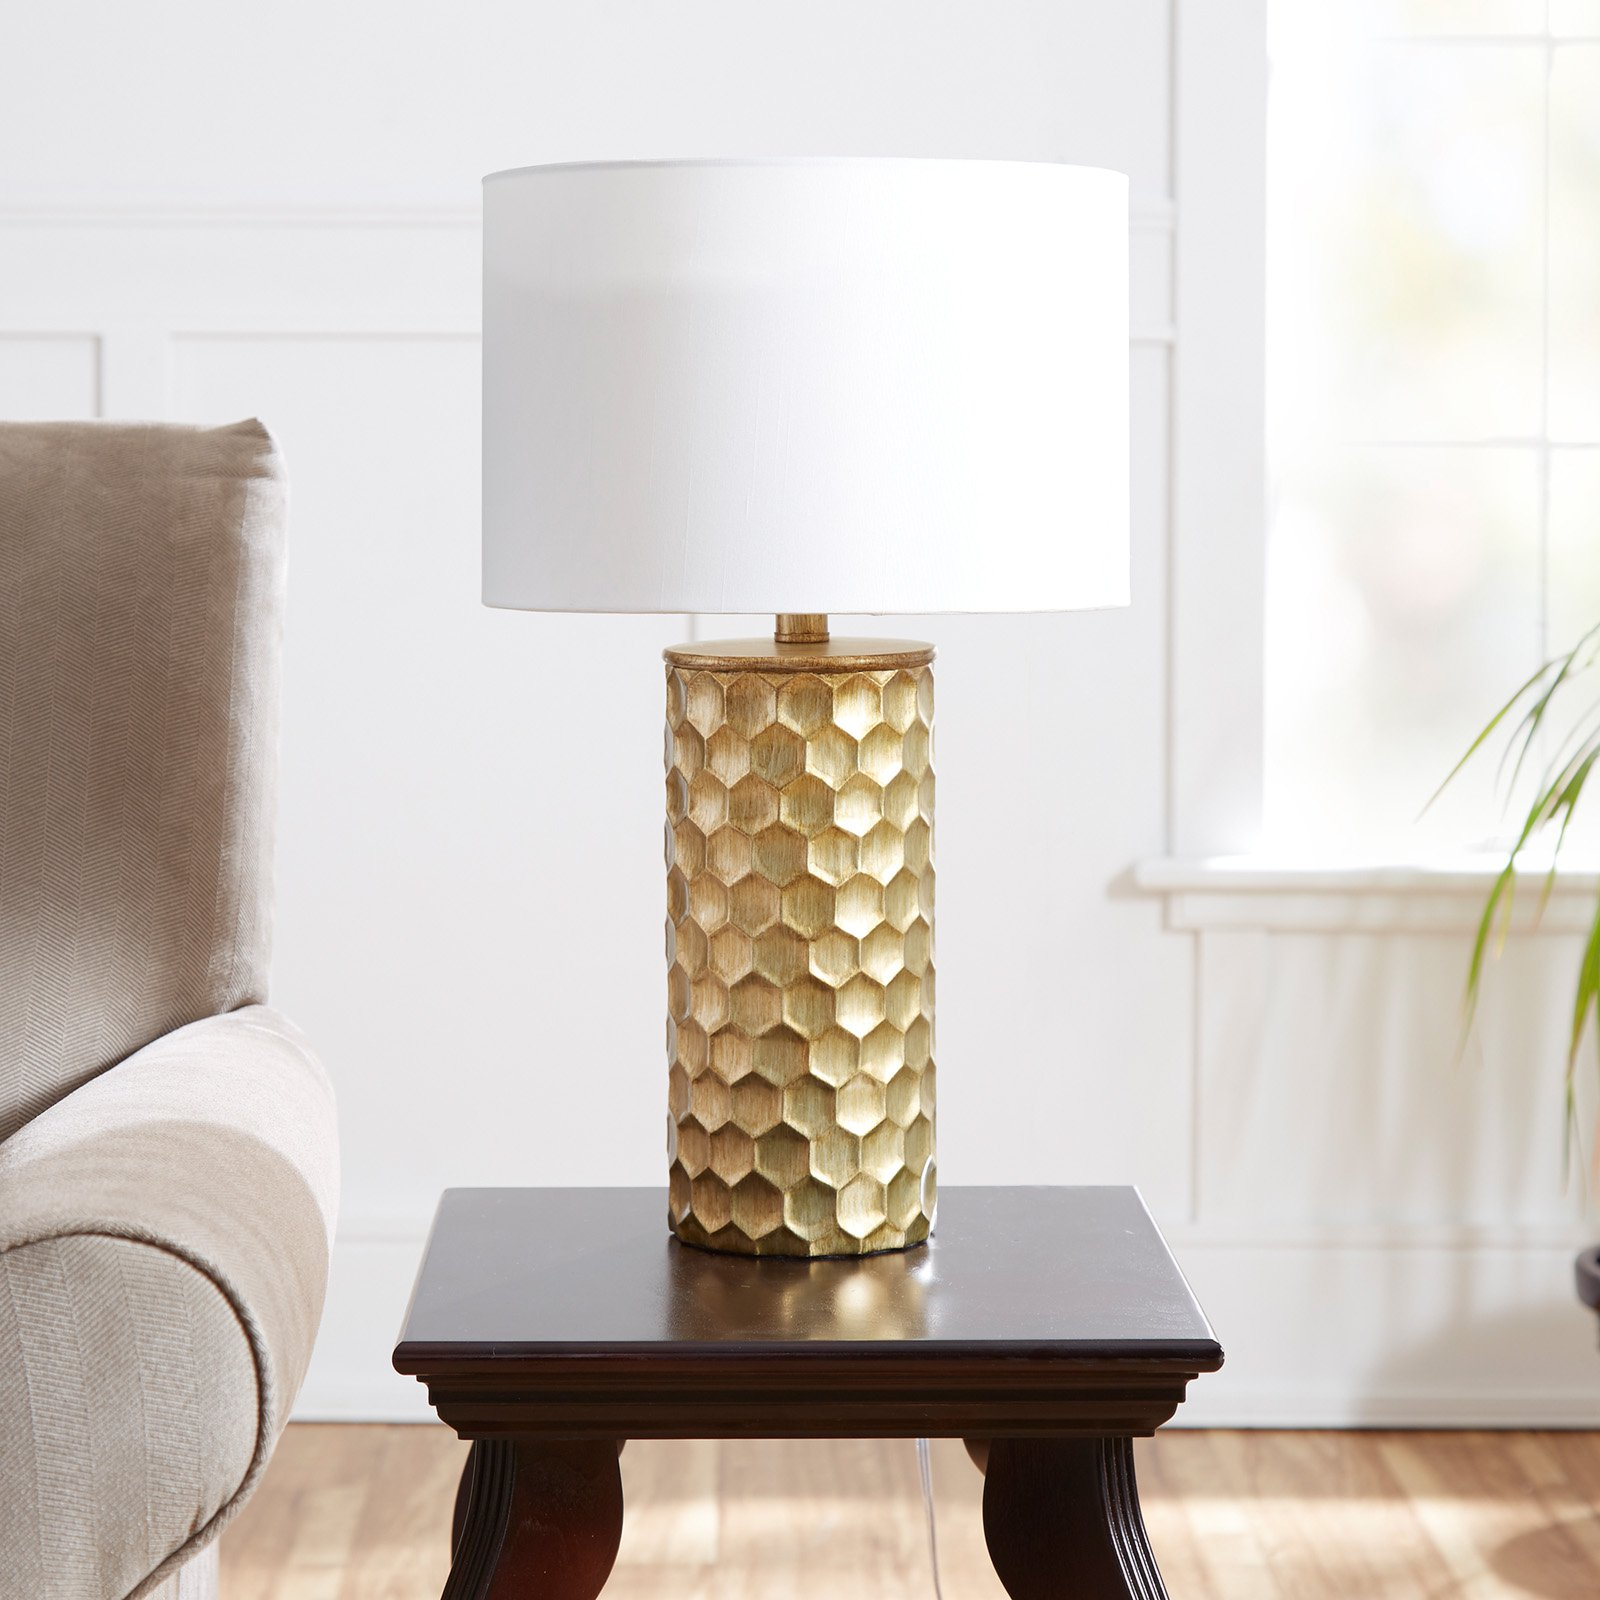 The Hive Gilded Table Lamp with Shade, CFL Bulb Included by Overstock